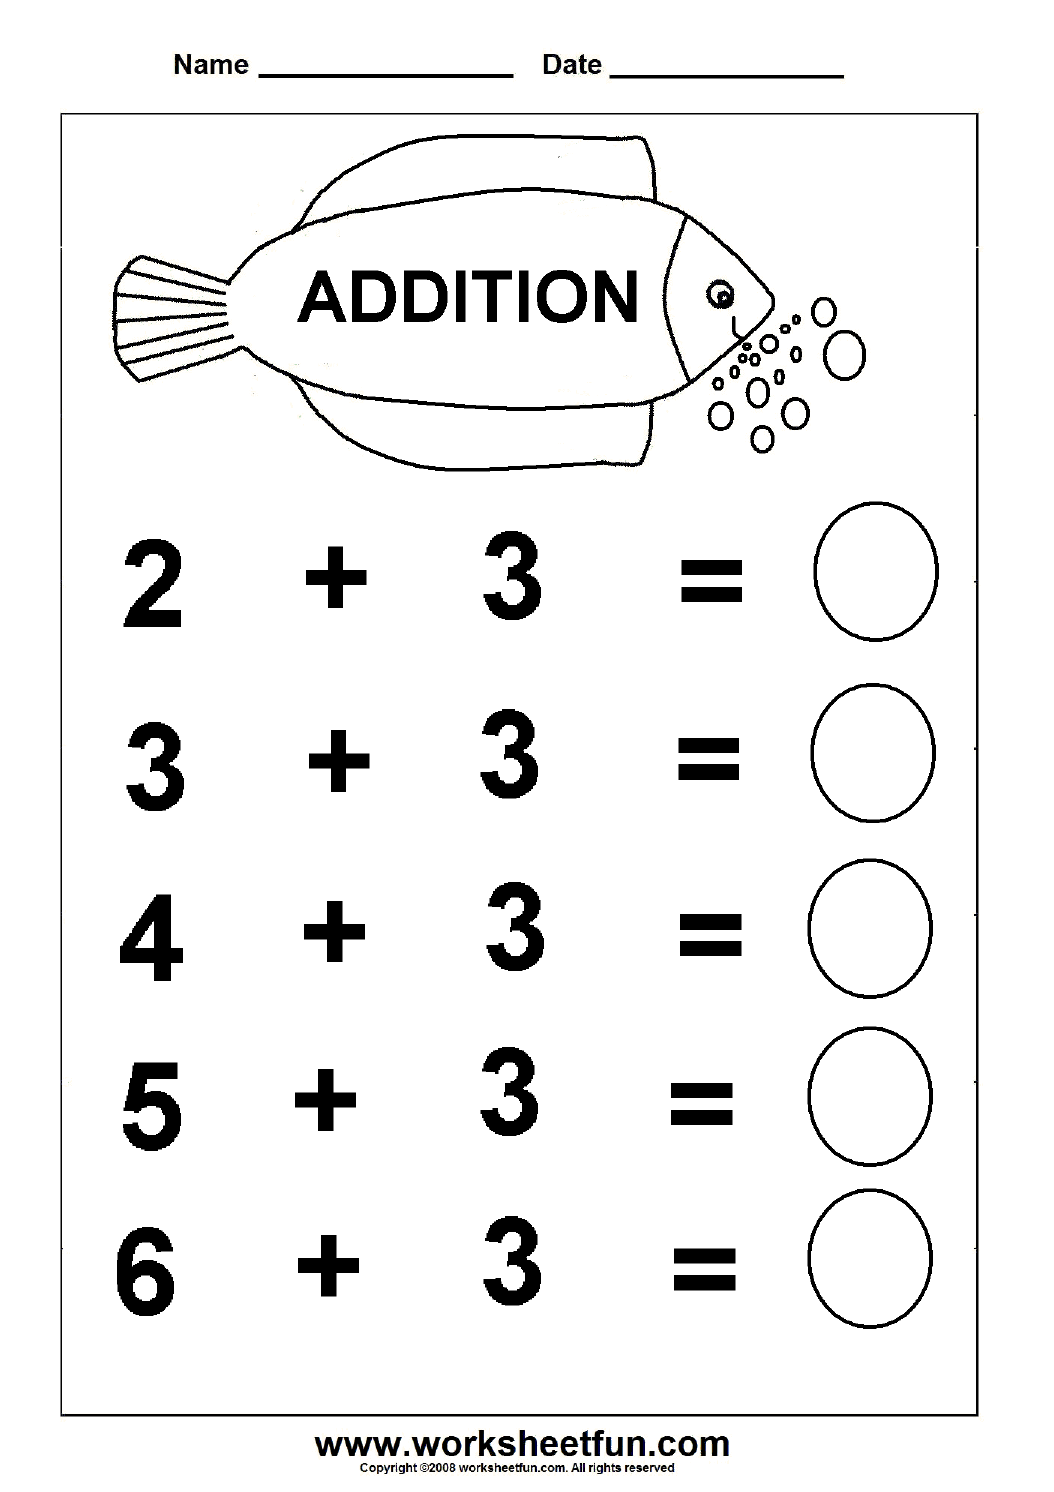 Beginner Addition 6 Kindergarten Addition Worksheets FREE – Free Addition Worksheets with Pictures